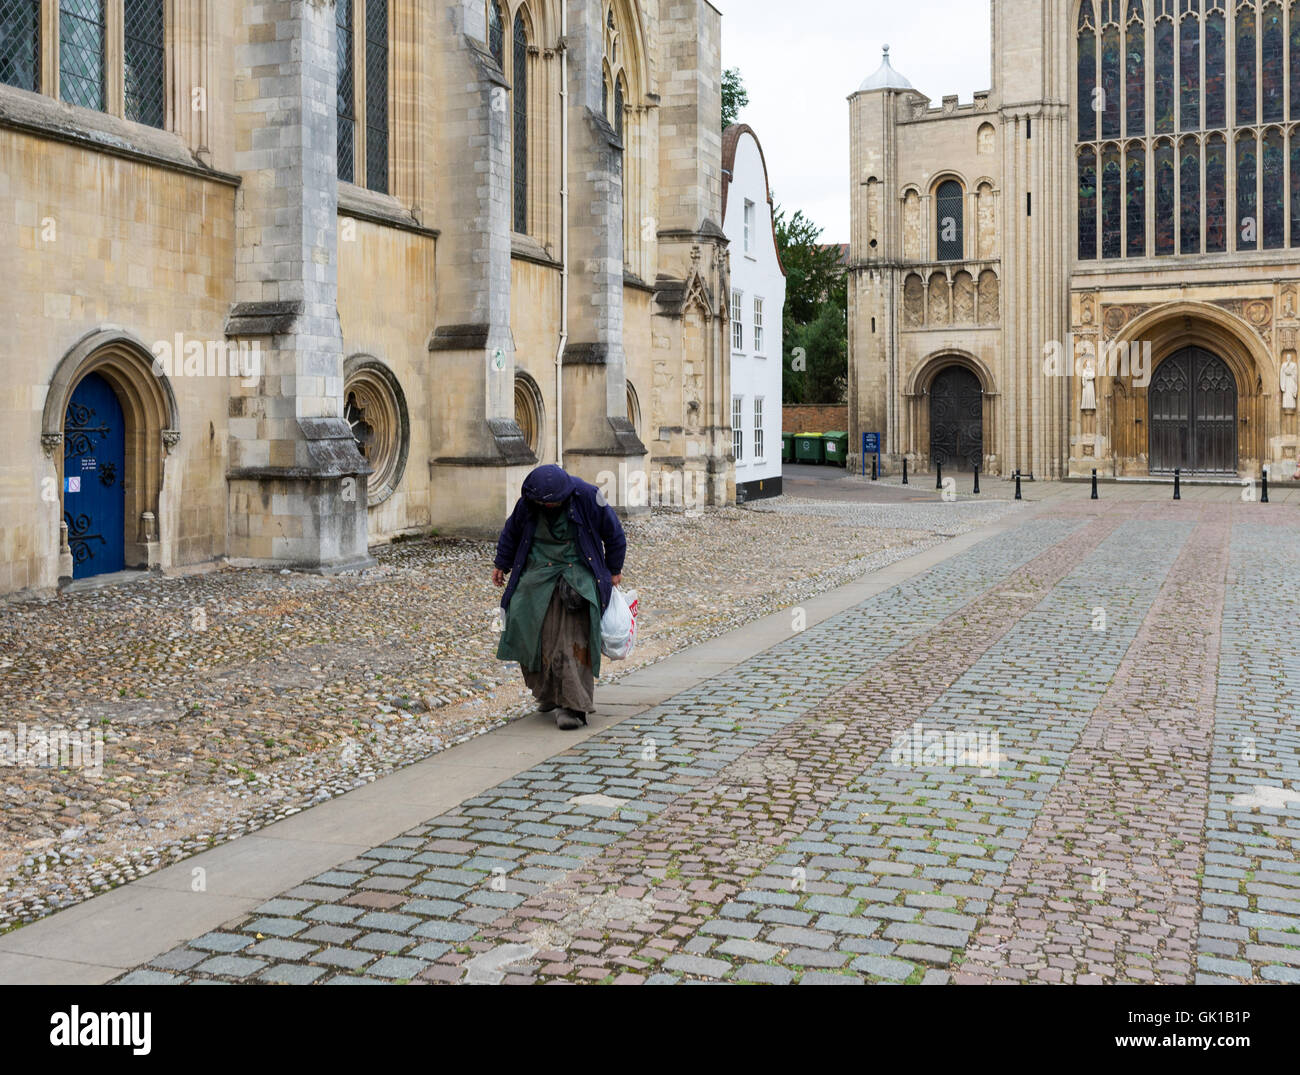 Bag lady at the cathedral. A down and out tramp walking through cathedral grounds to her next doorway sleeping spot. - Stock Image